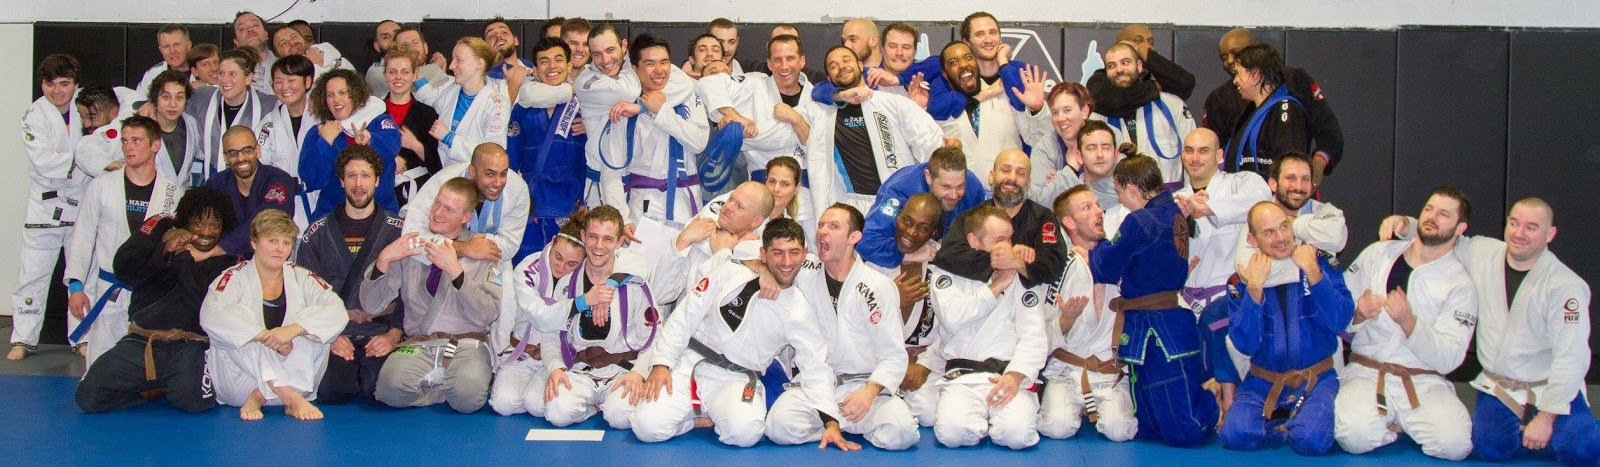 Hart Jiu Jitsu, Kickboxing and Mixed Martial Arts Academy - photo